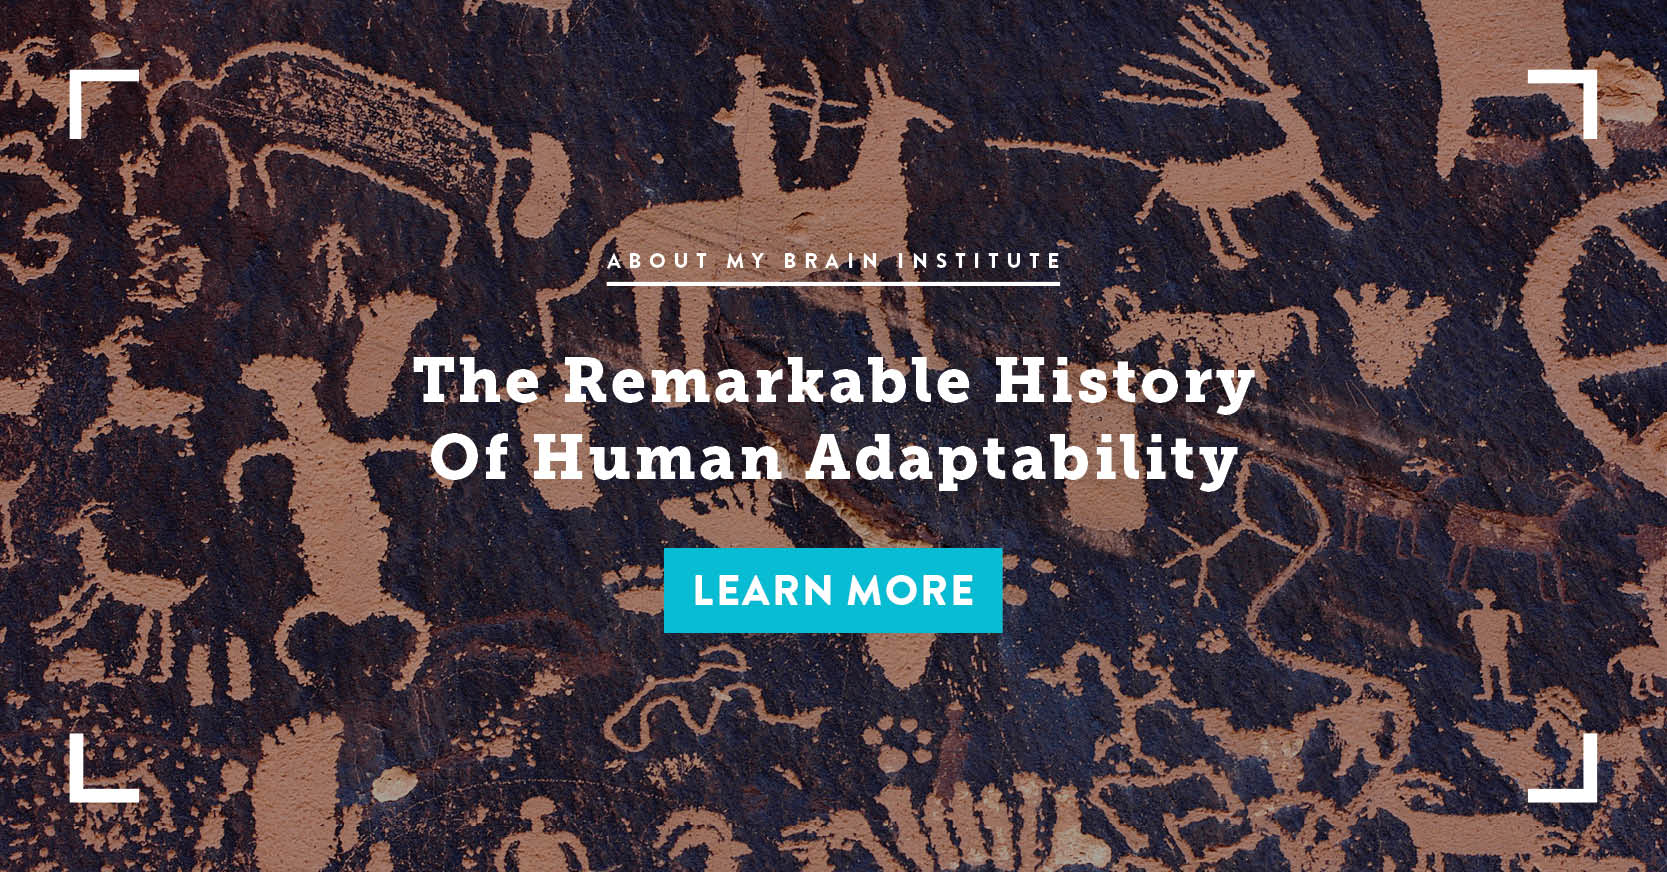 The Remarkable History Of Human Adaptability